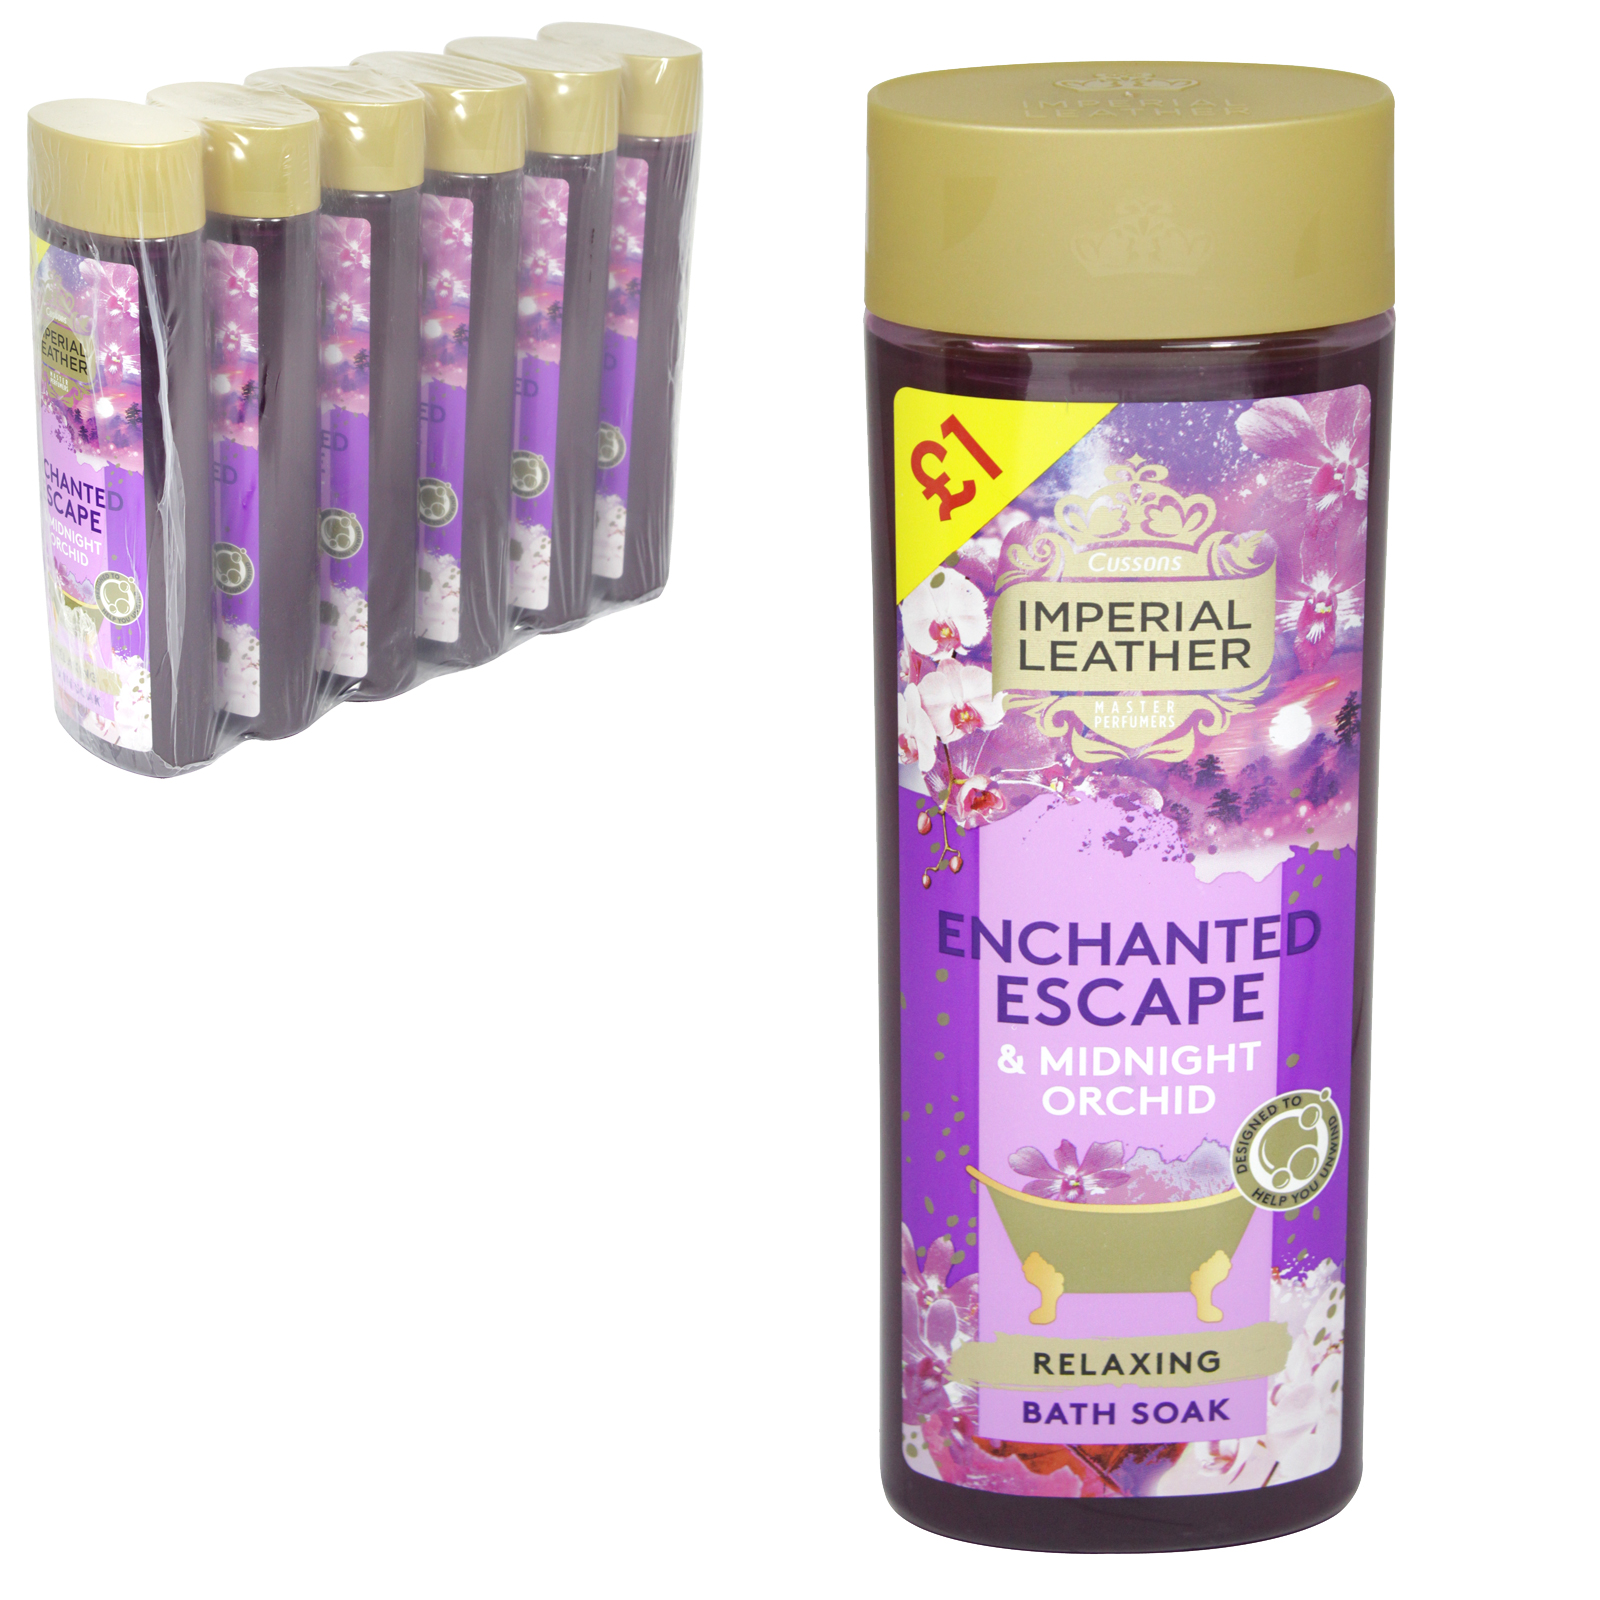 IMPERIAL LEATHER CREME BATH 500ML RELAXING ORCHID & YLANG YLANG  £1 X6